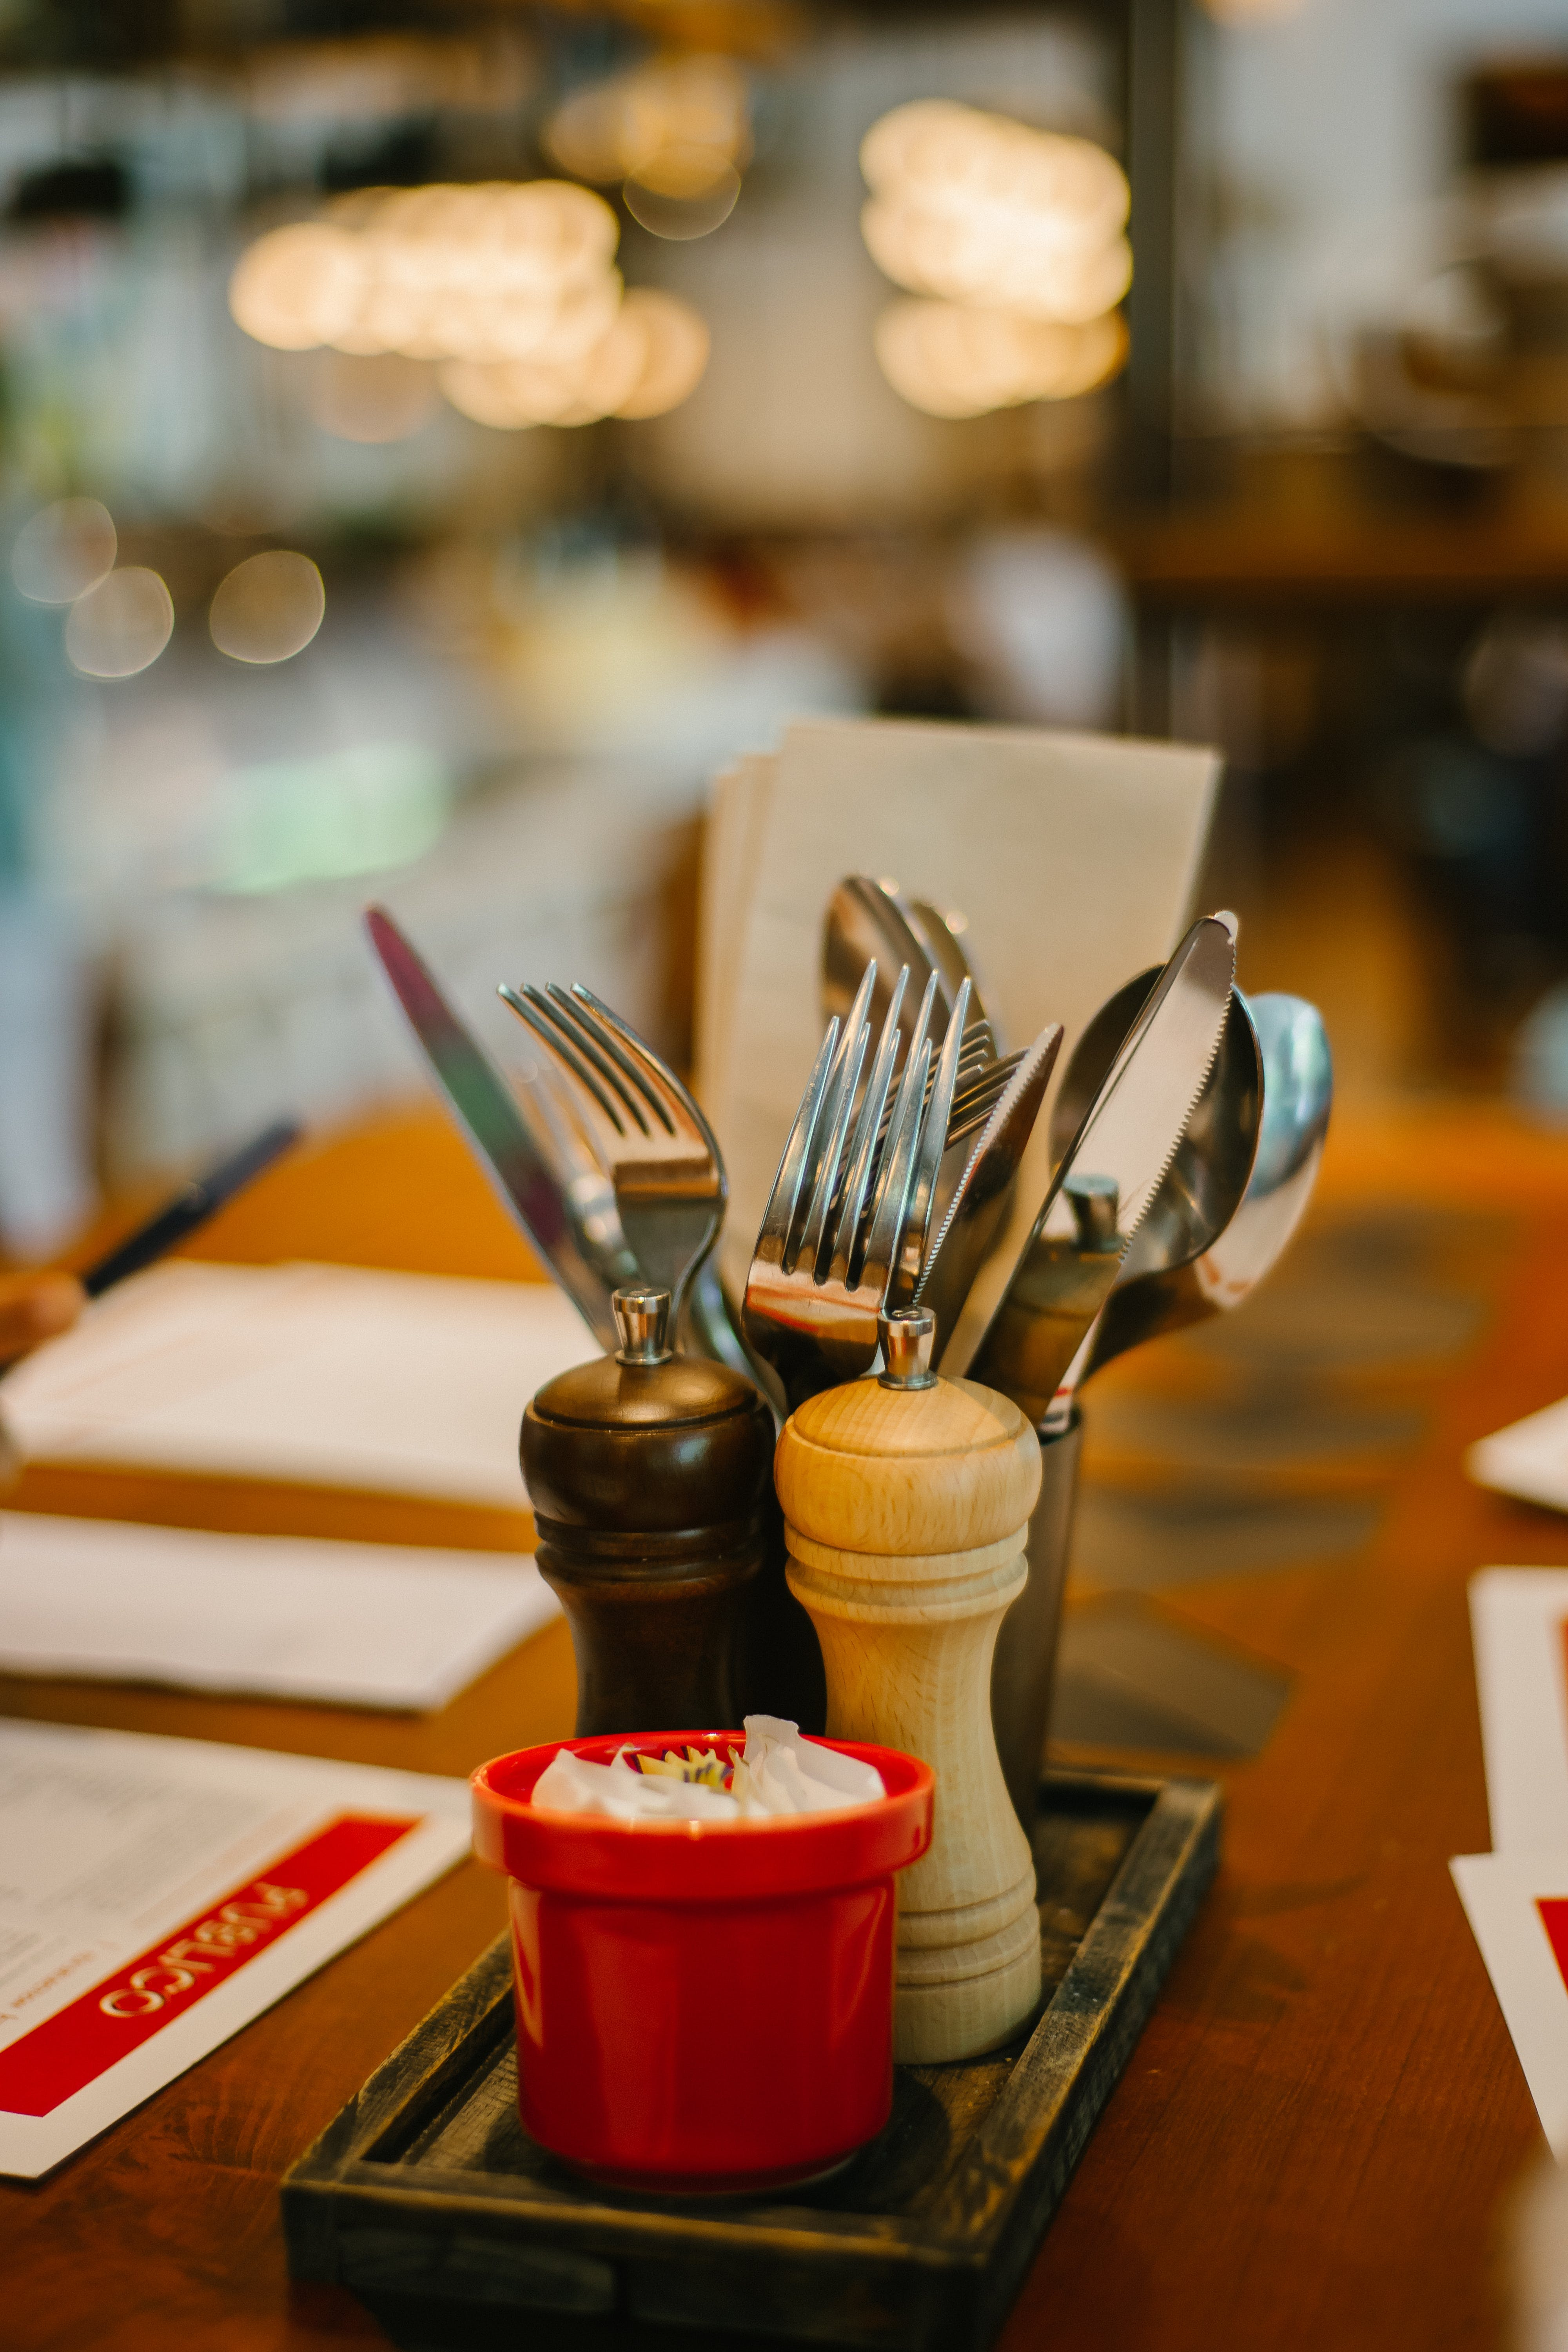 Shallow Focus Photography Of Flatware